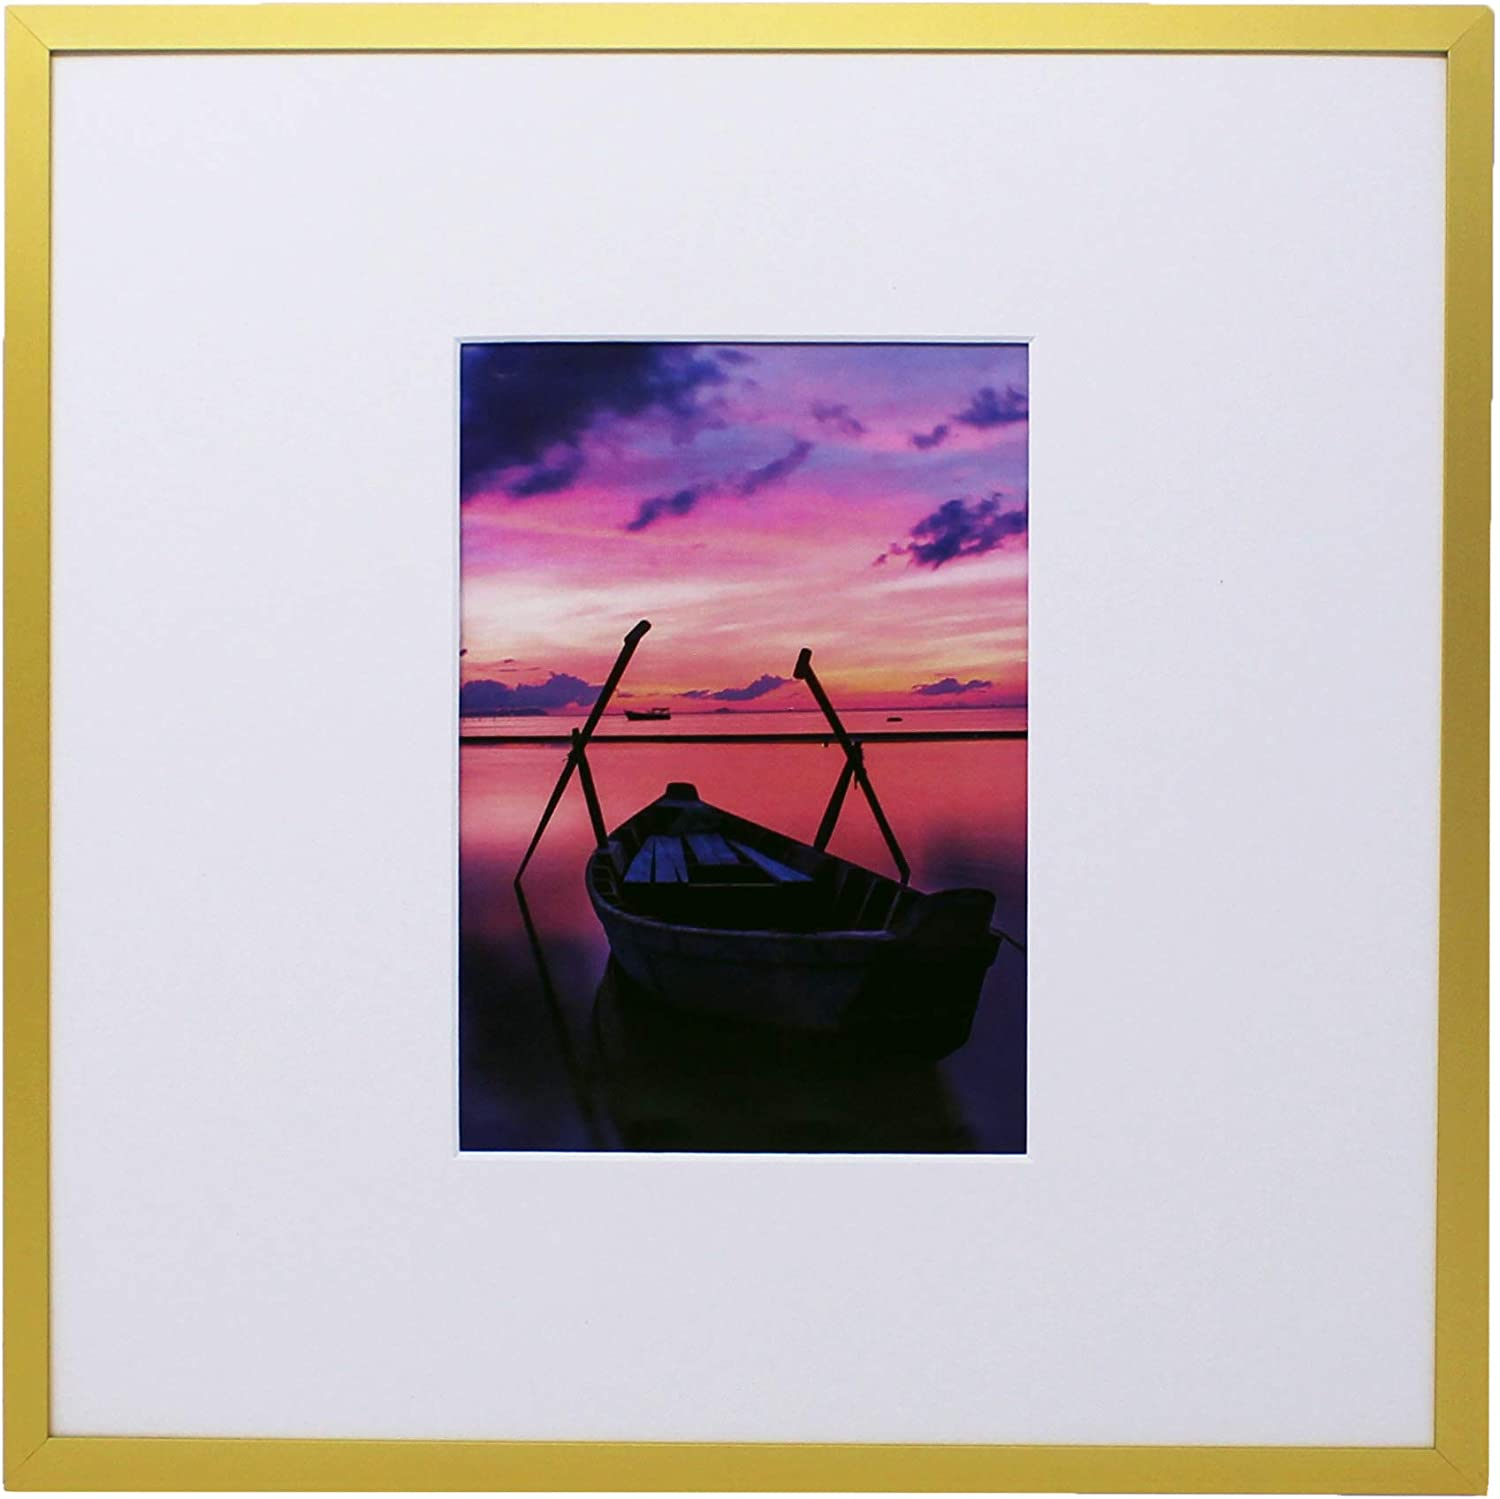 Gold Brushed Aluminum 12x12 Metal Picture Frame with 5x7 Mat - I